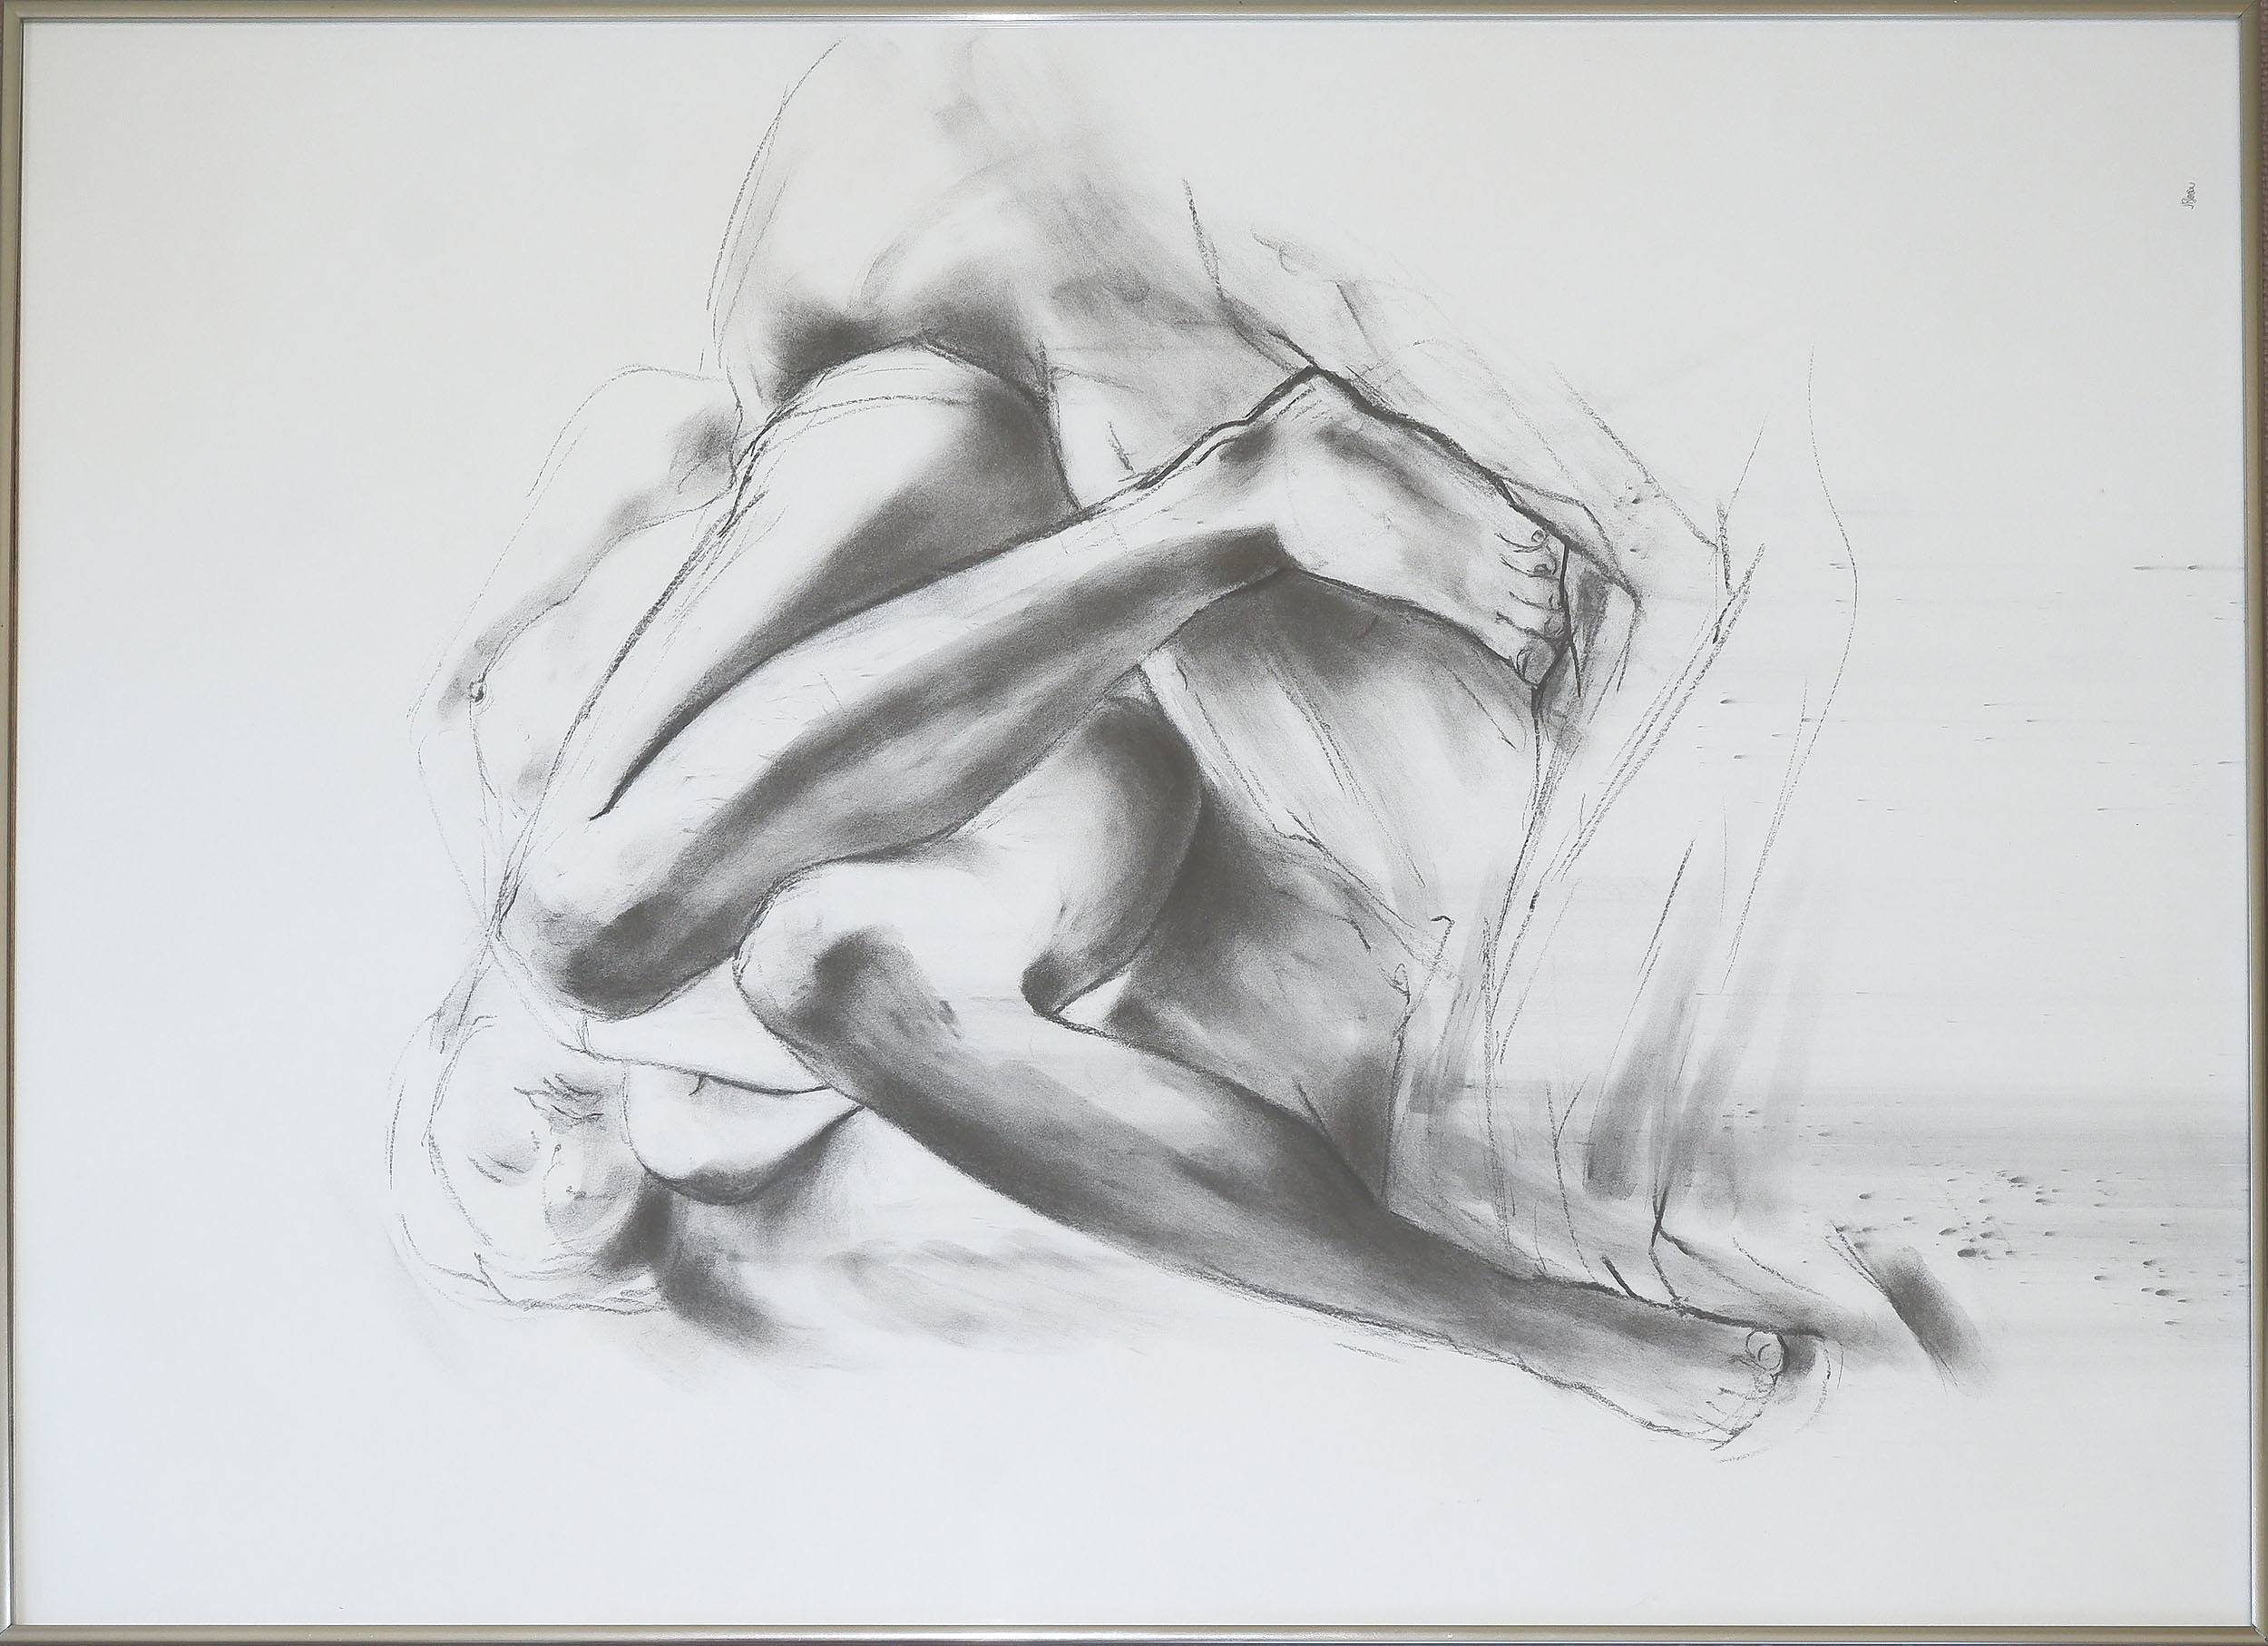 'Jan Brown (born 1951), Life Drawing - Mid-1980s, Charcoal on Paper'